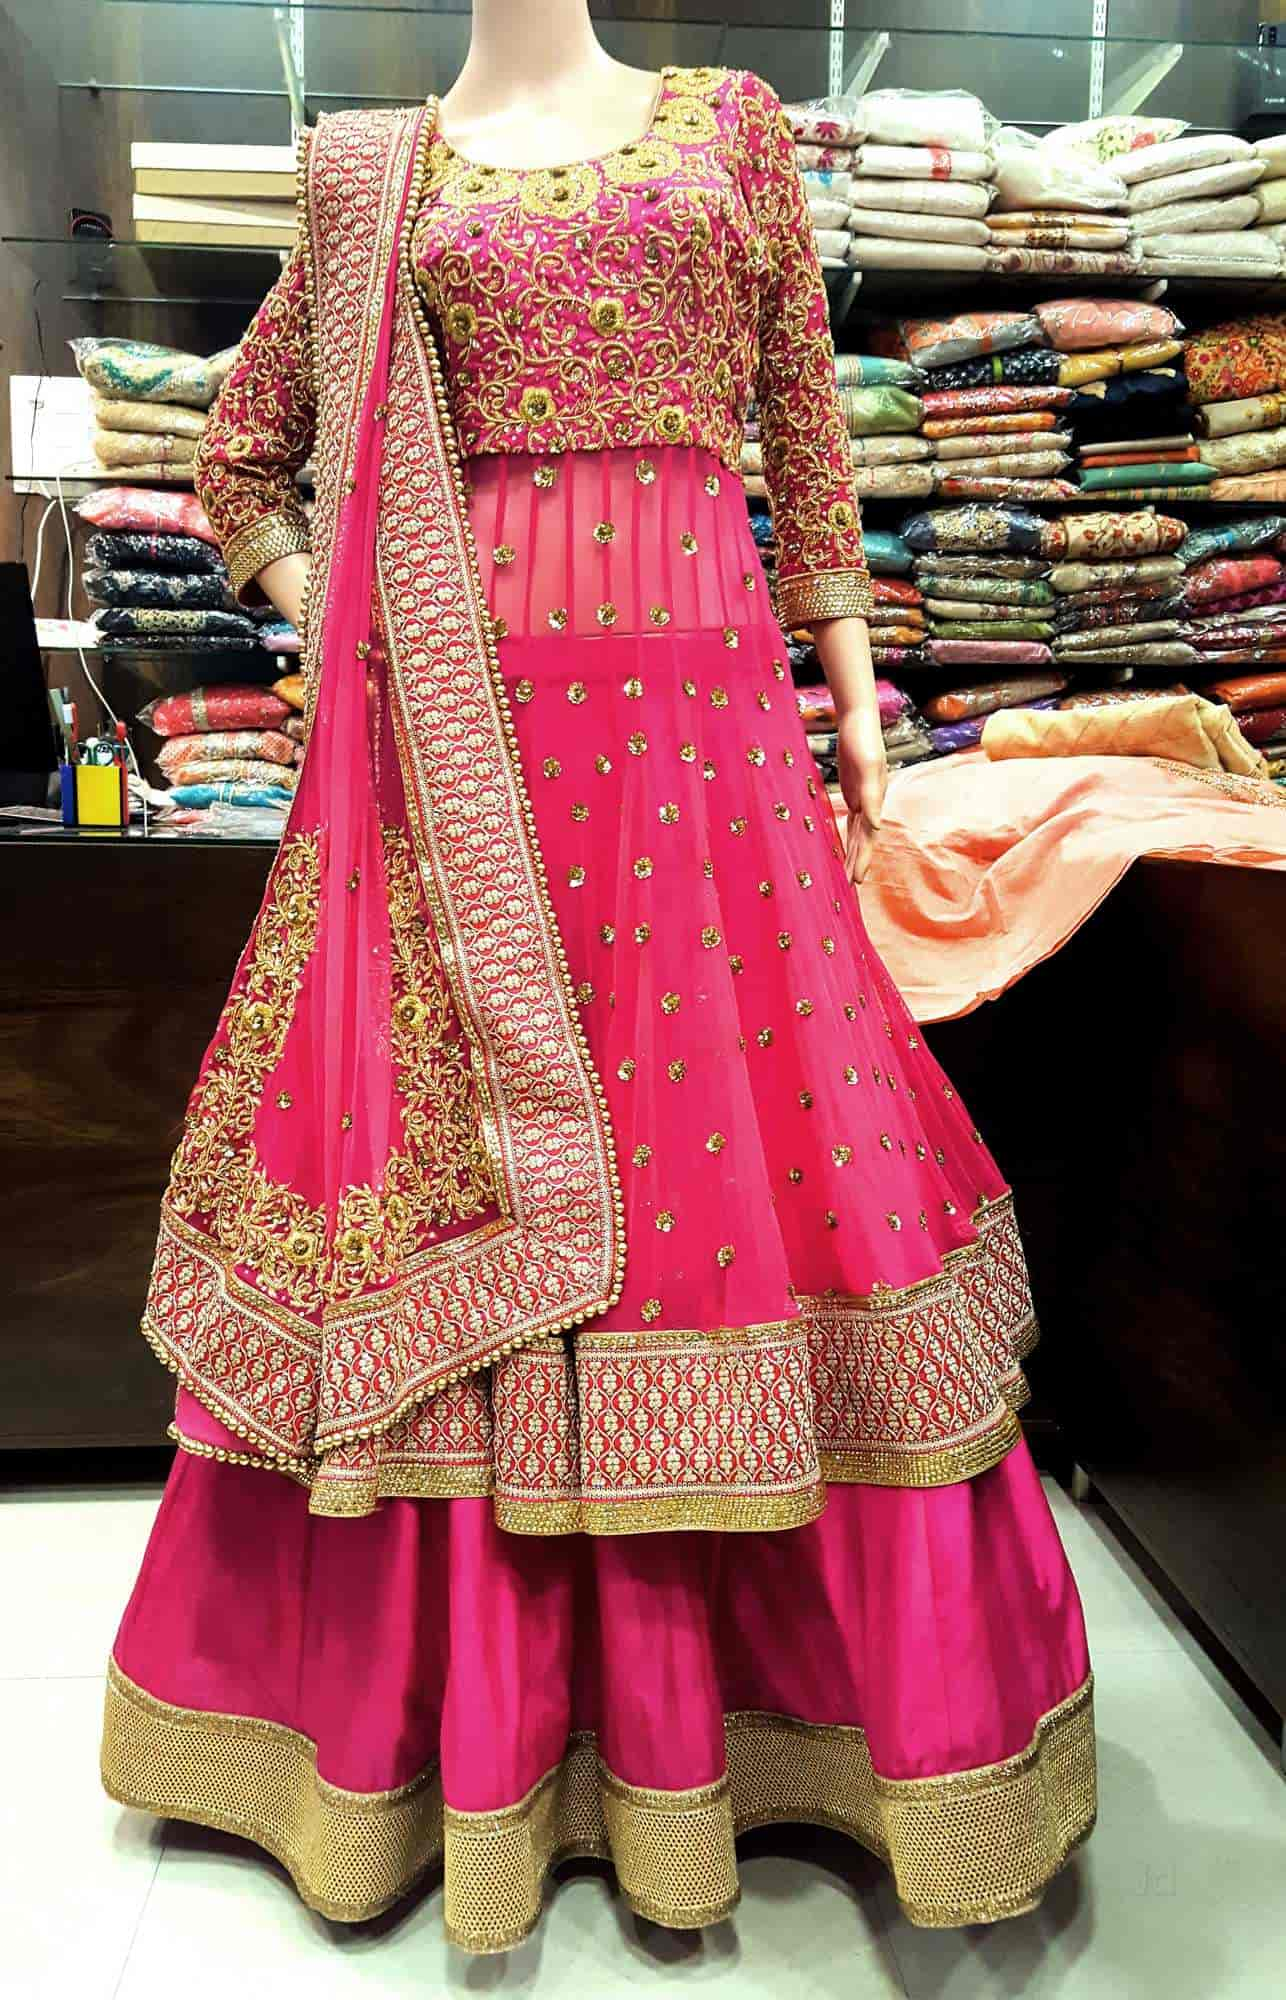 d52f7fc1c3 Ethnic Story, Aundh - Women Boutiques in Pune - Justdial